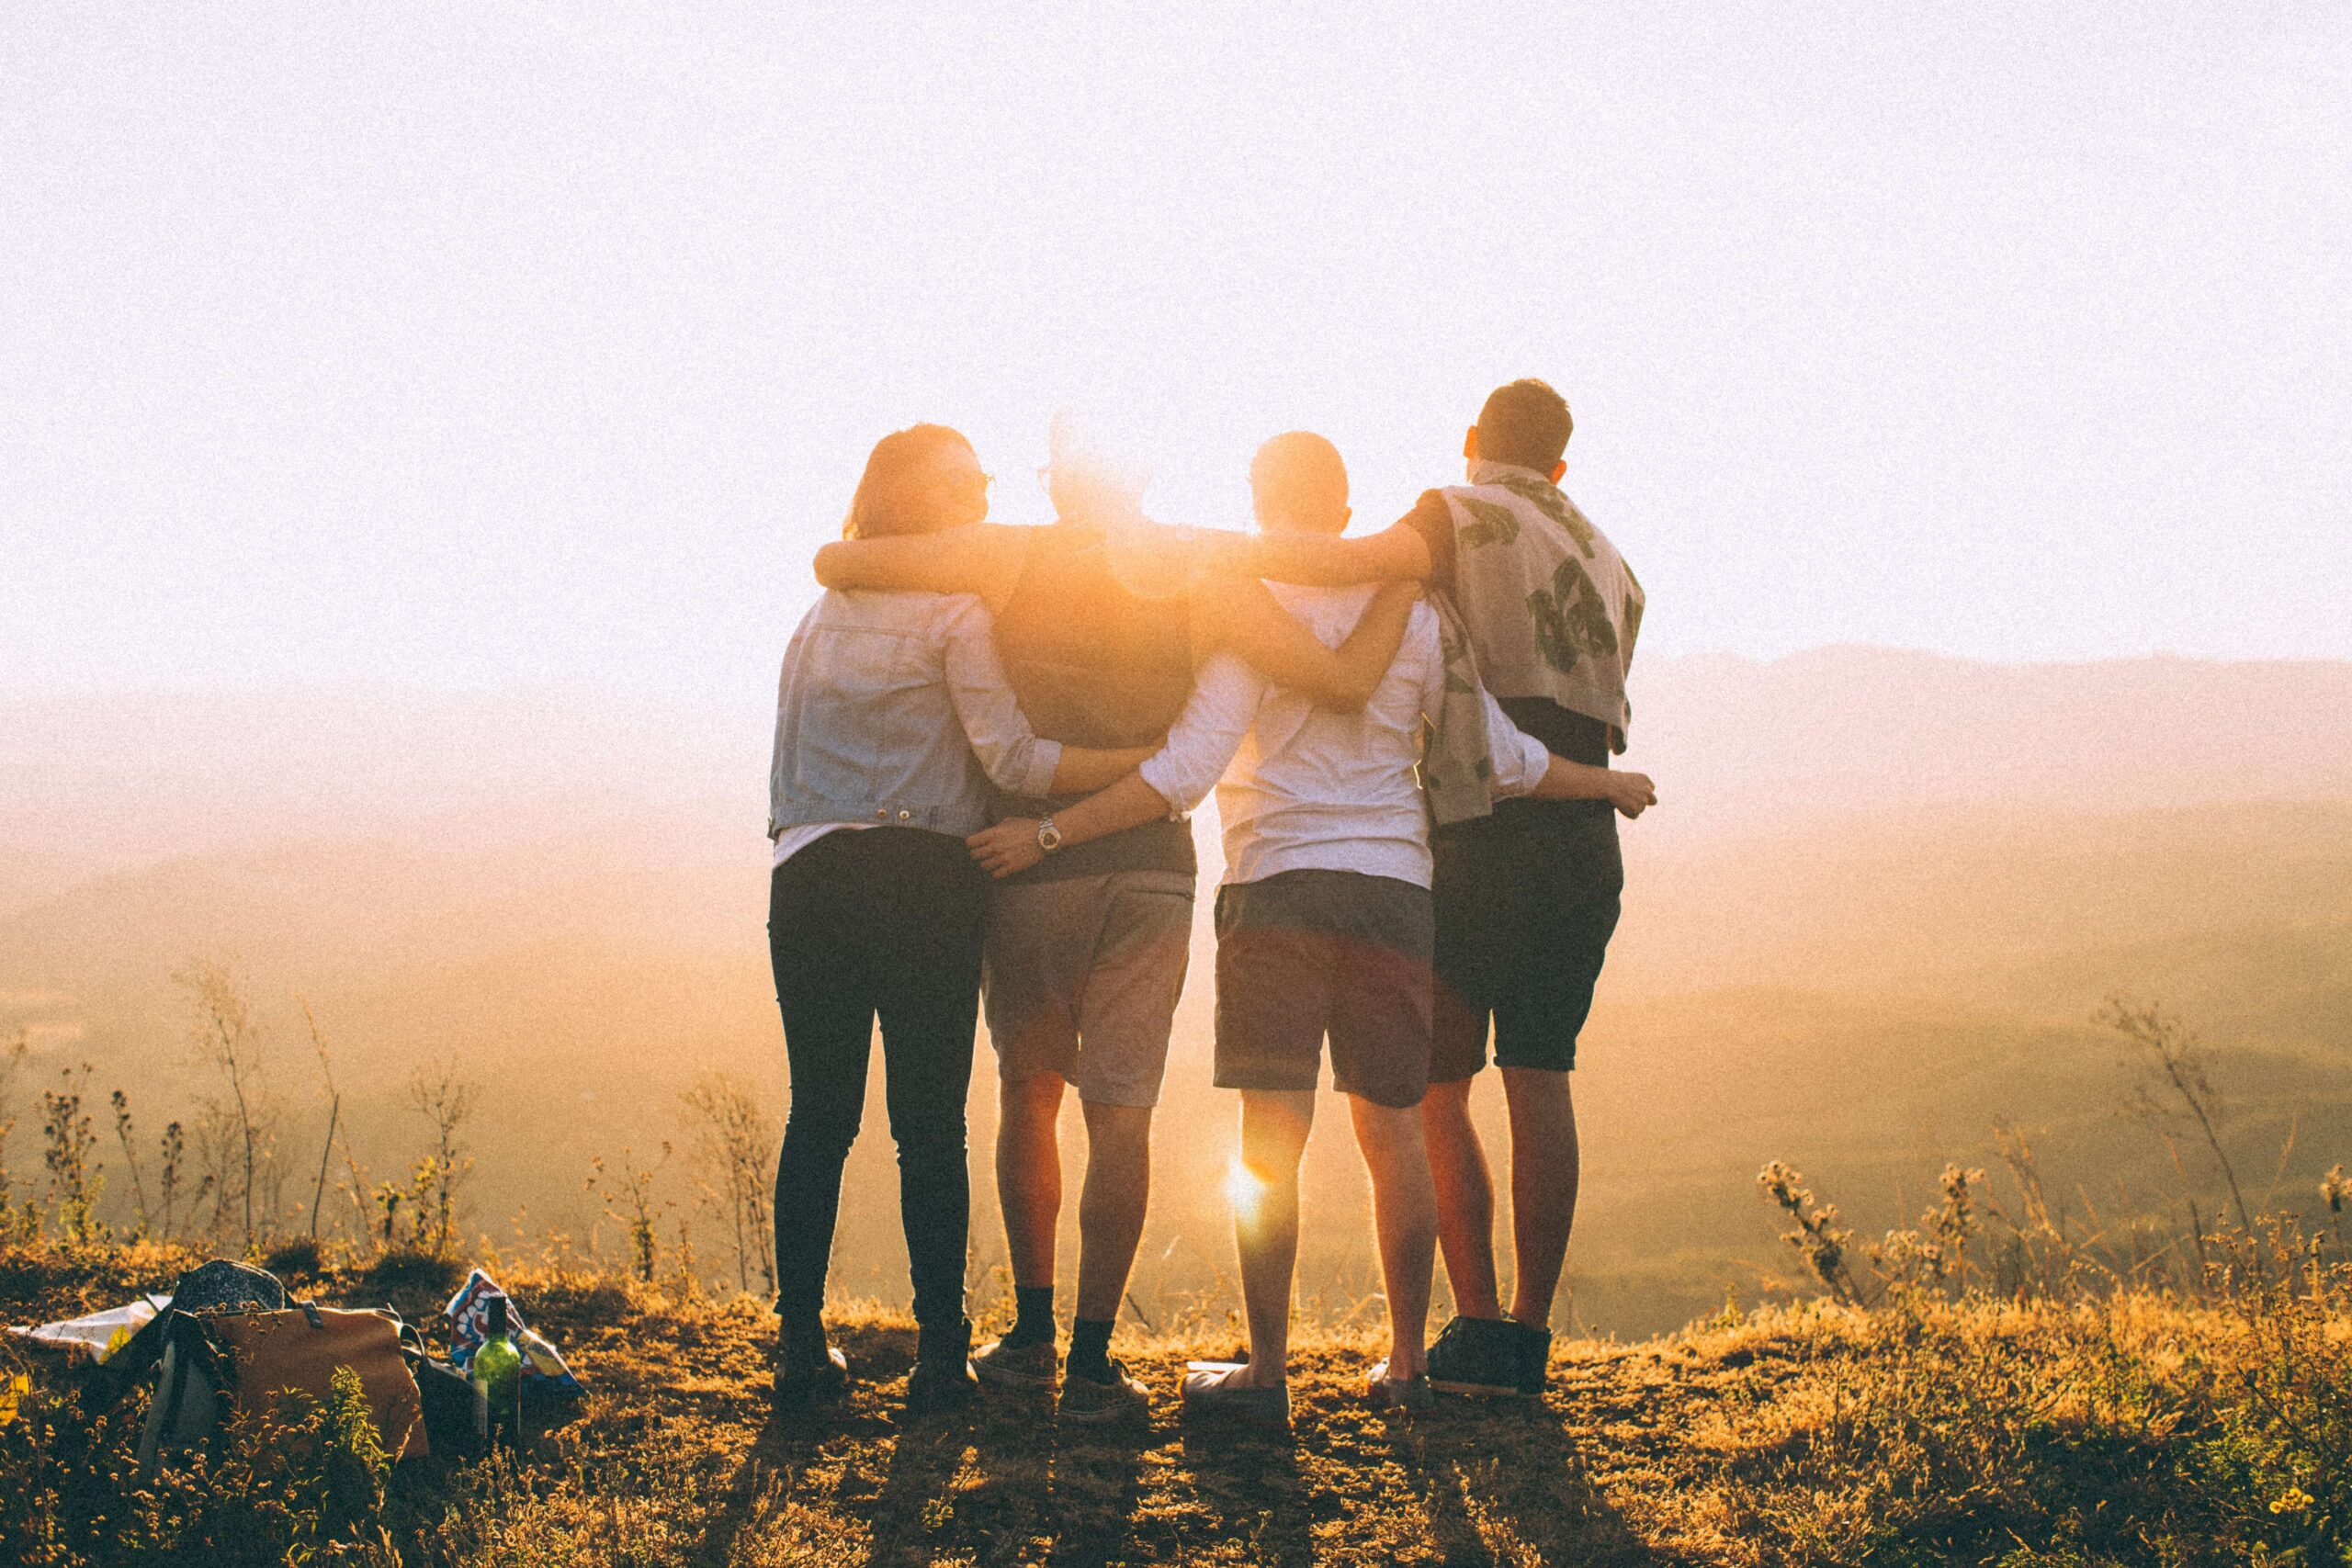 Making friends while travelling solo